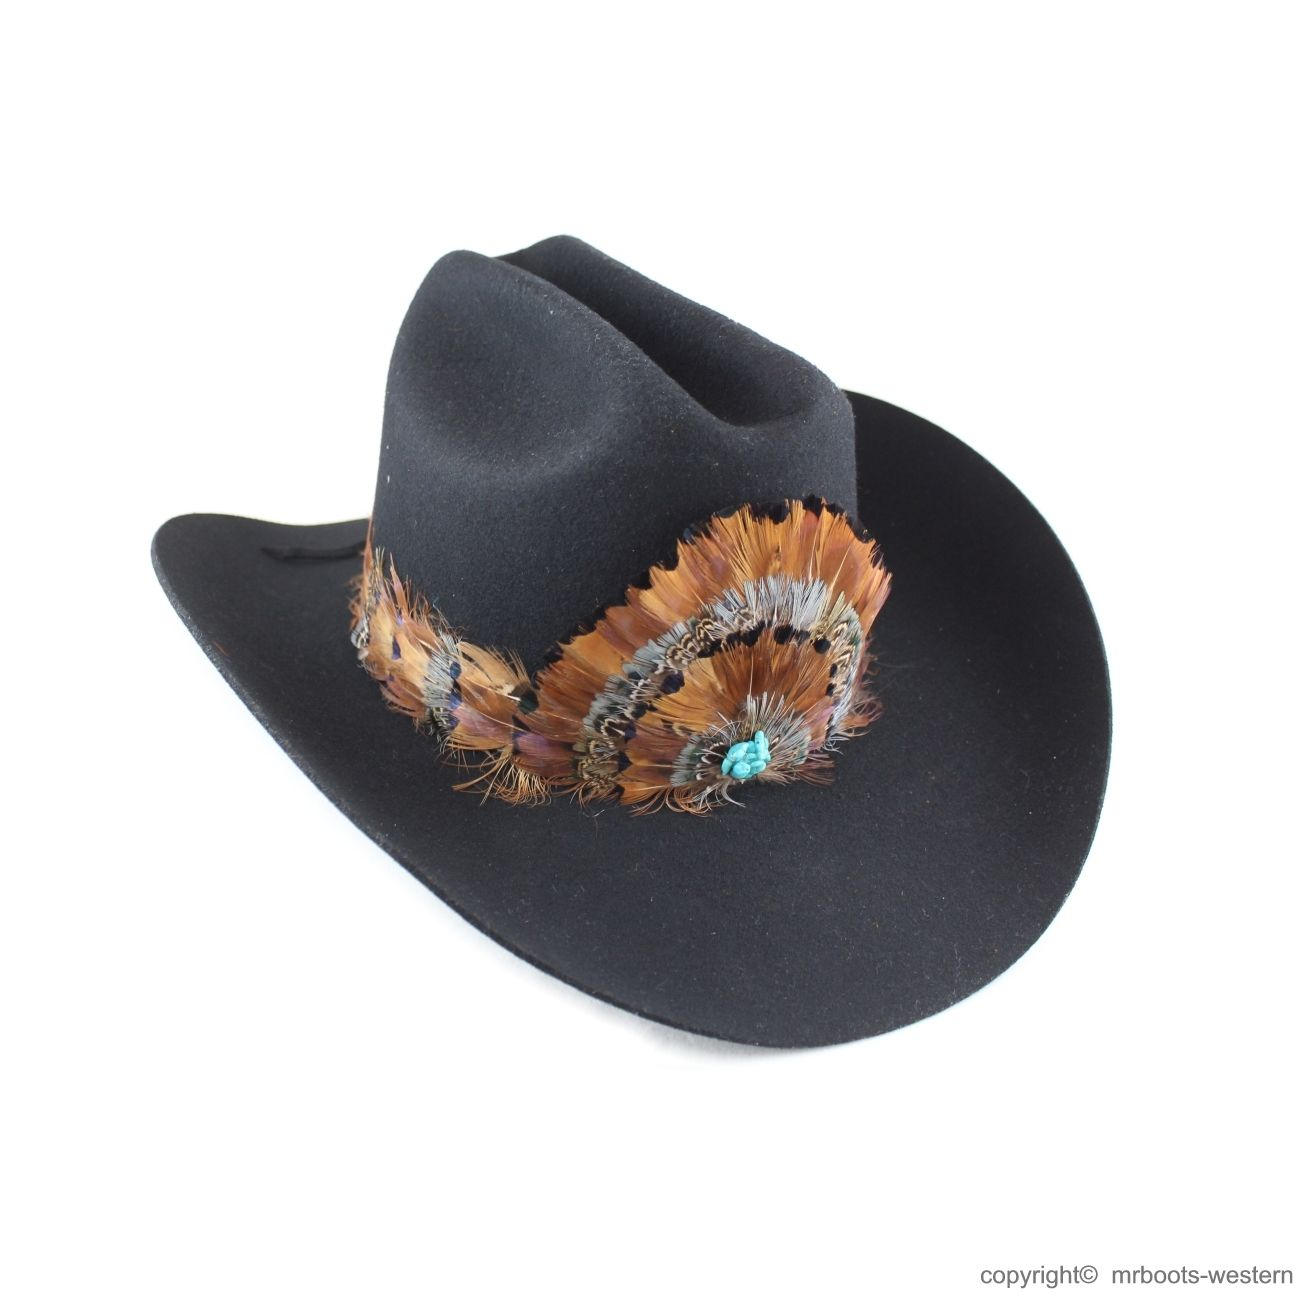 Au Fhb 08 Feather Hat Band Natural Brown With Turquoise Center Feather Hat Felt Cowboy Hats Hat Band